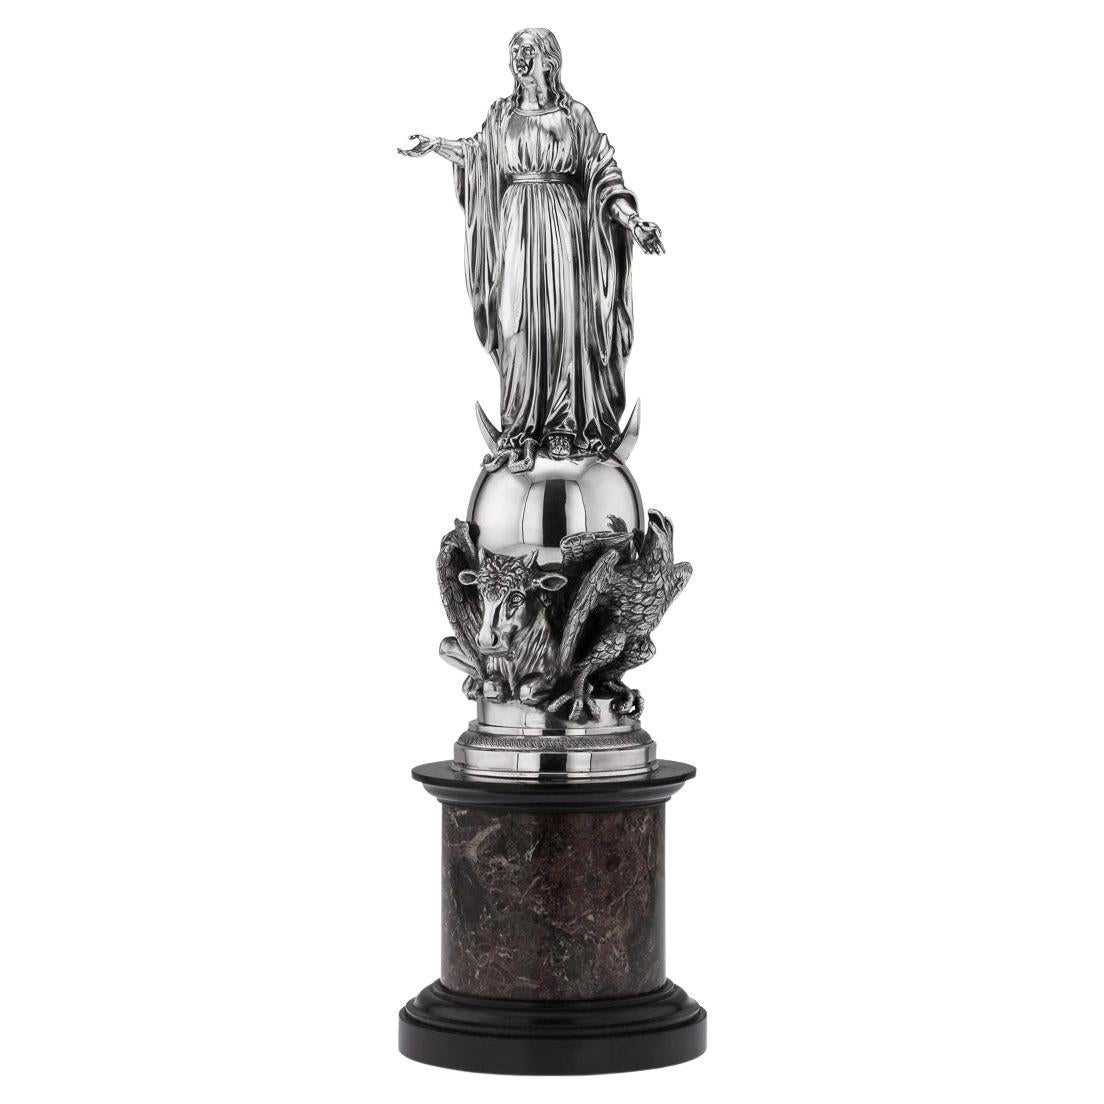 Antique 19thc French Monumental Solid Silver Figural Centrepiece c.1880